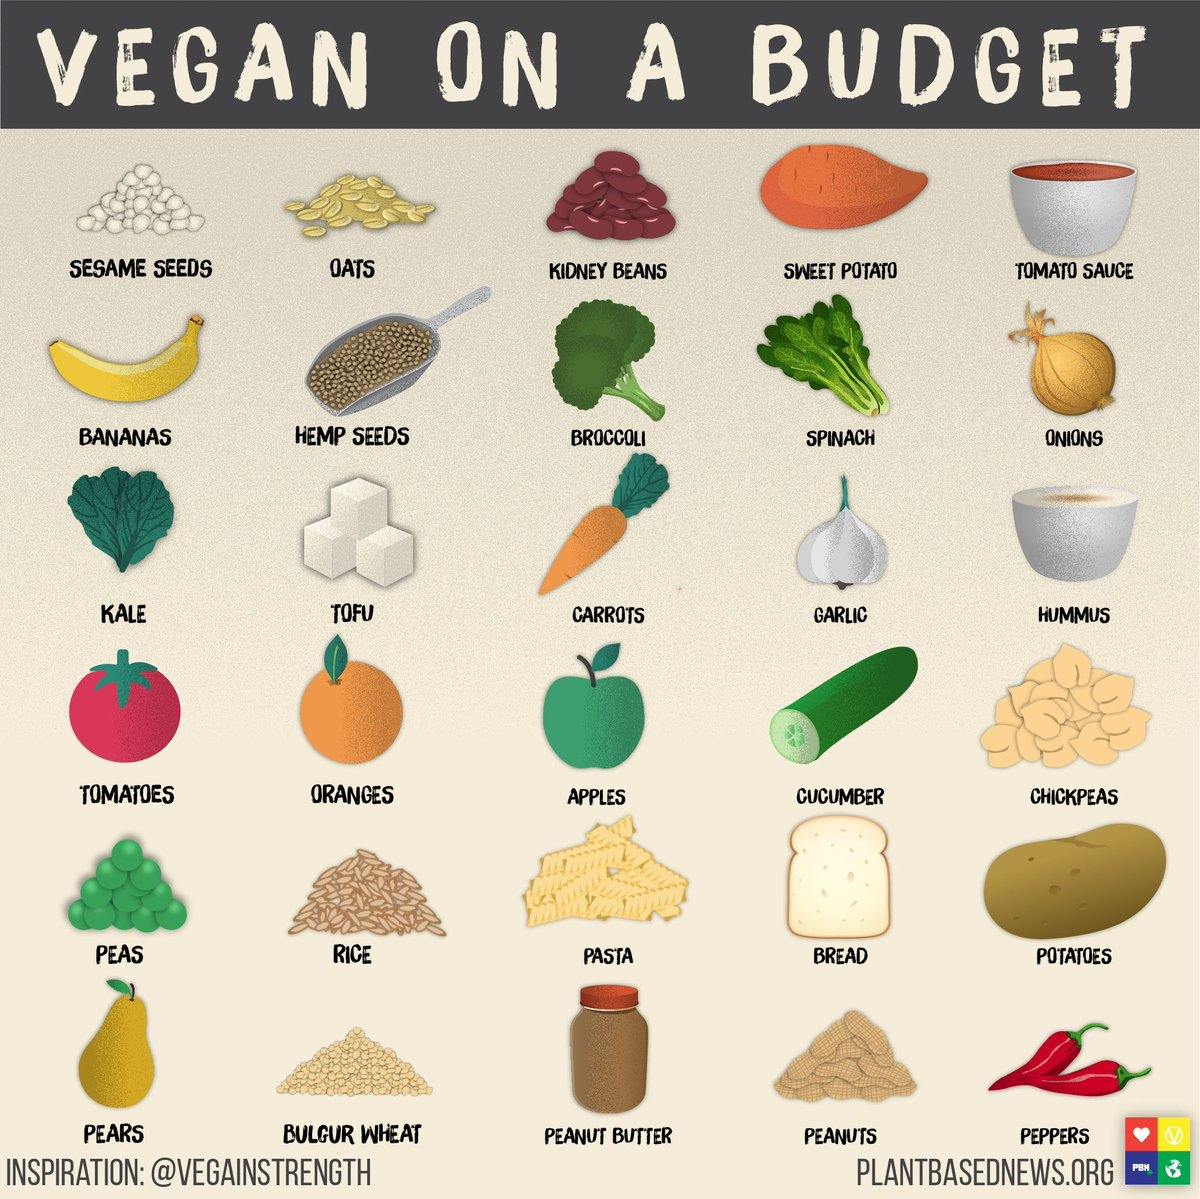 RT @PlantBasedNews: #vegan on a budget ???????????????? https://t.co/KxNSXHzSBT